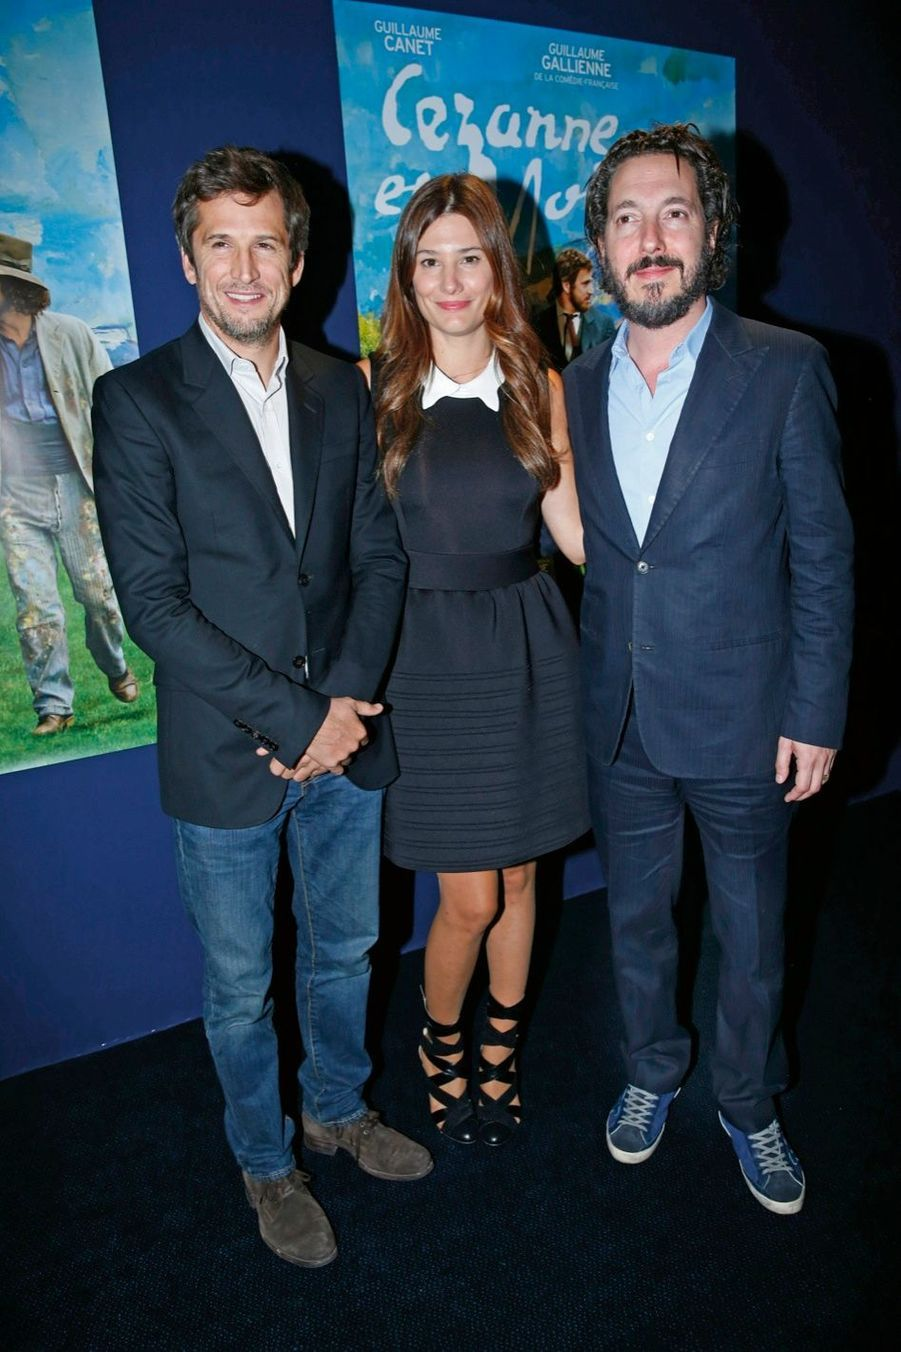 GUILLAUME CANET, ALICE POL, GUILLAUME GALLIENNE.